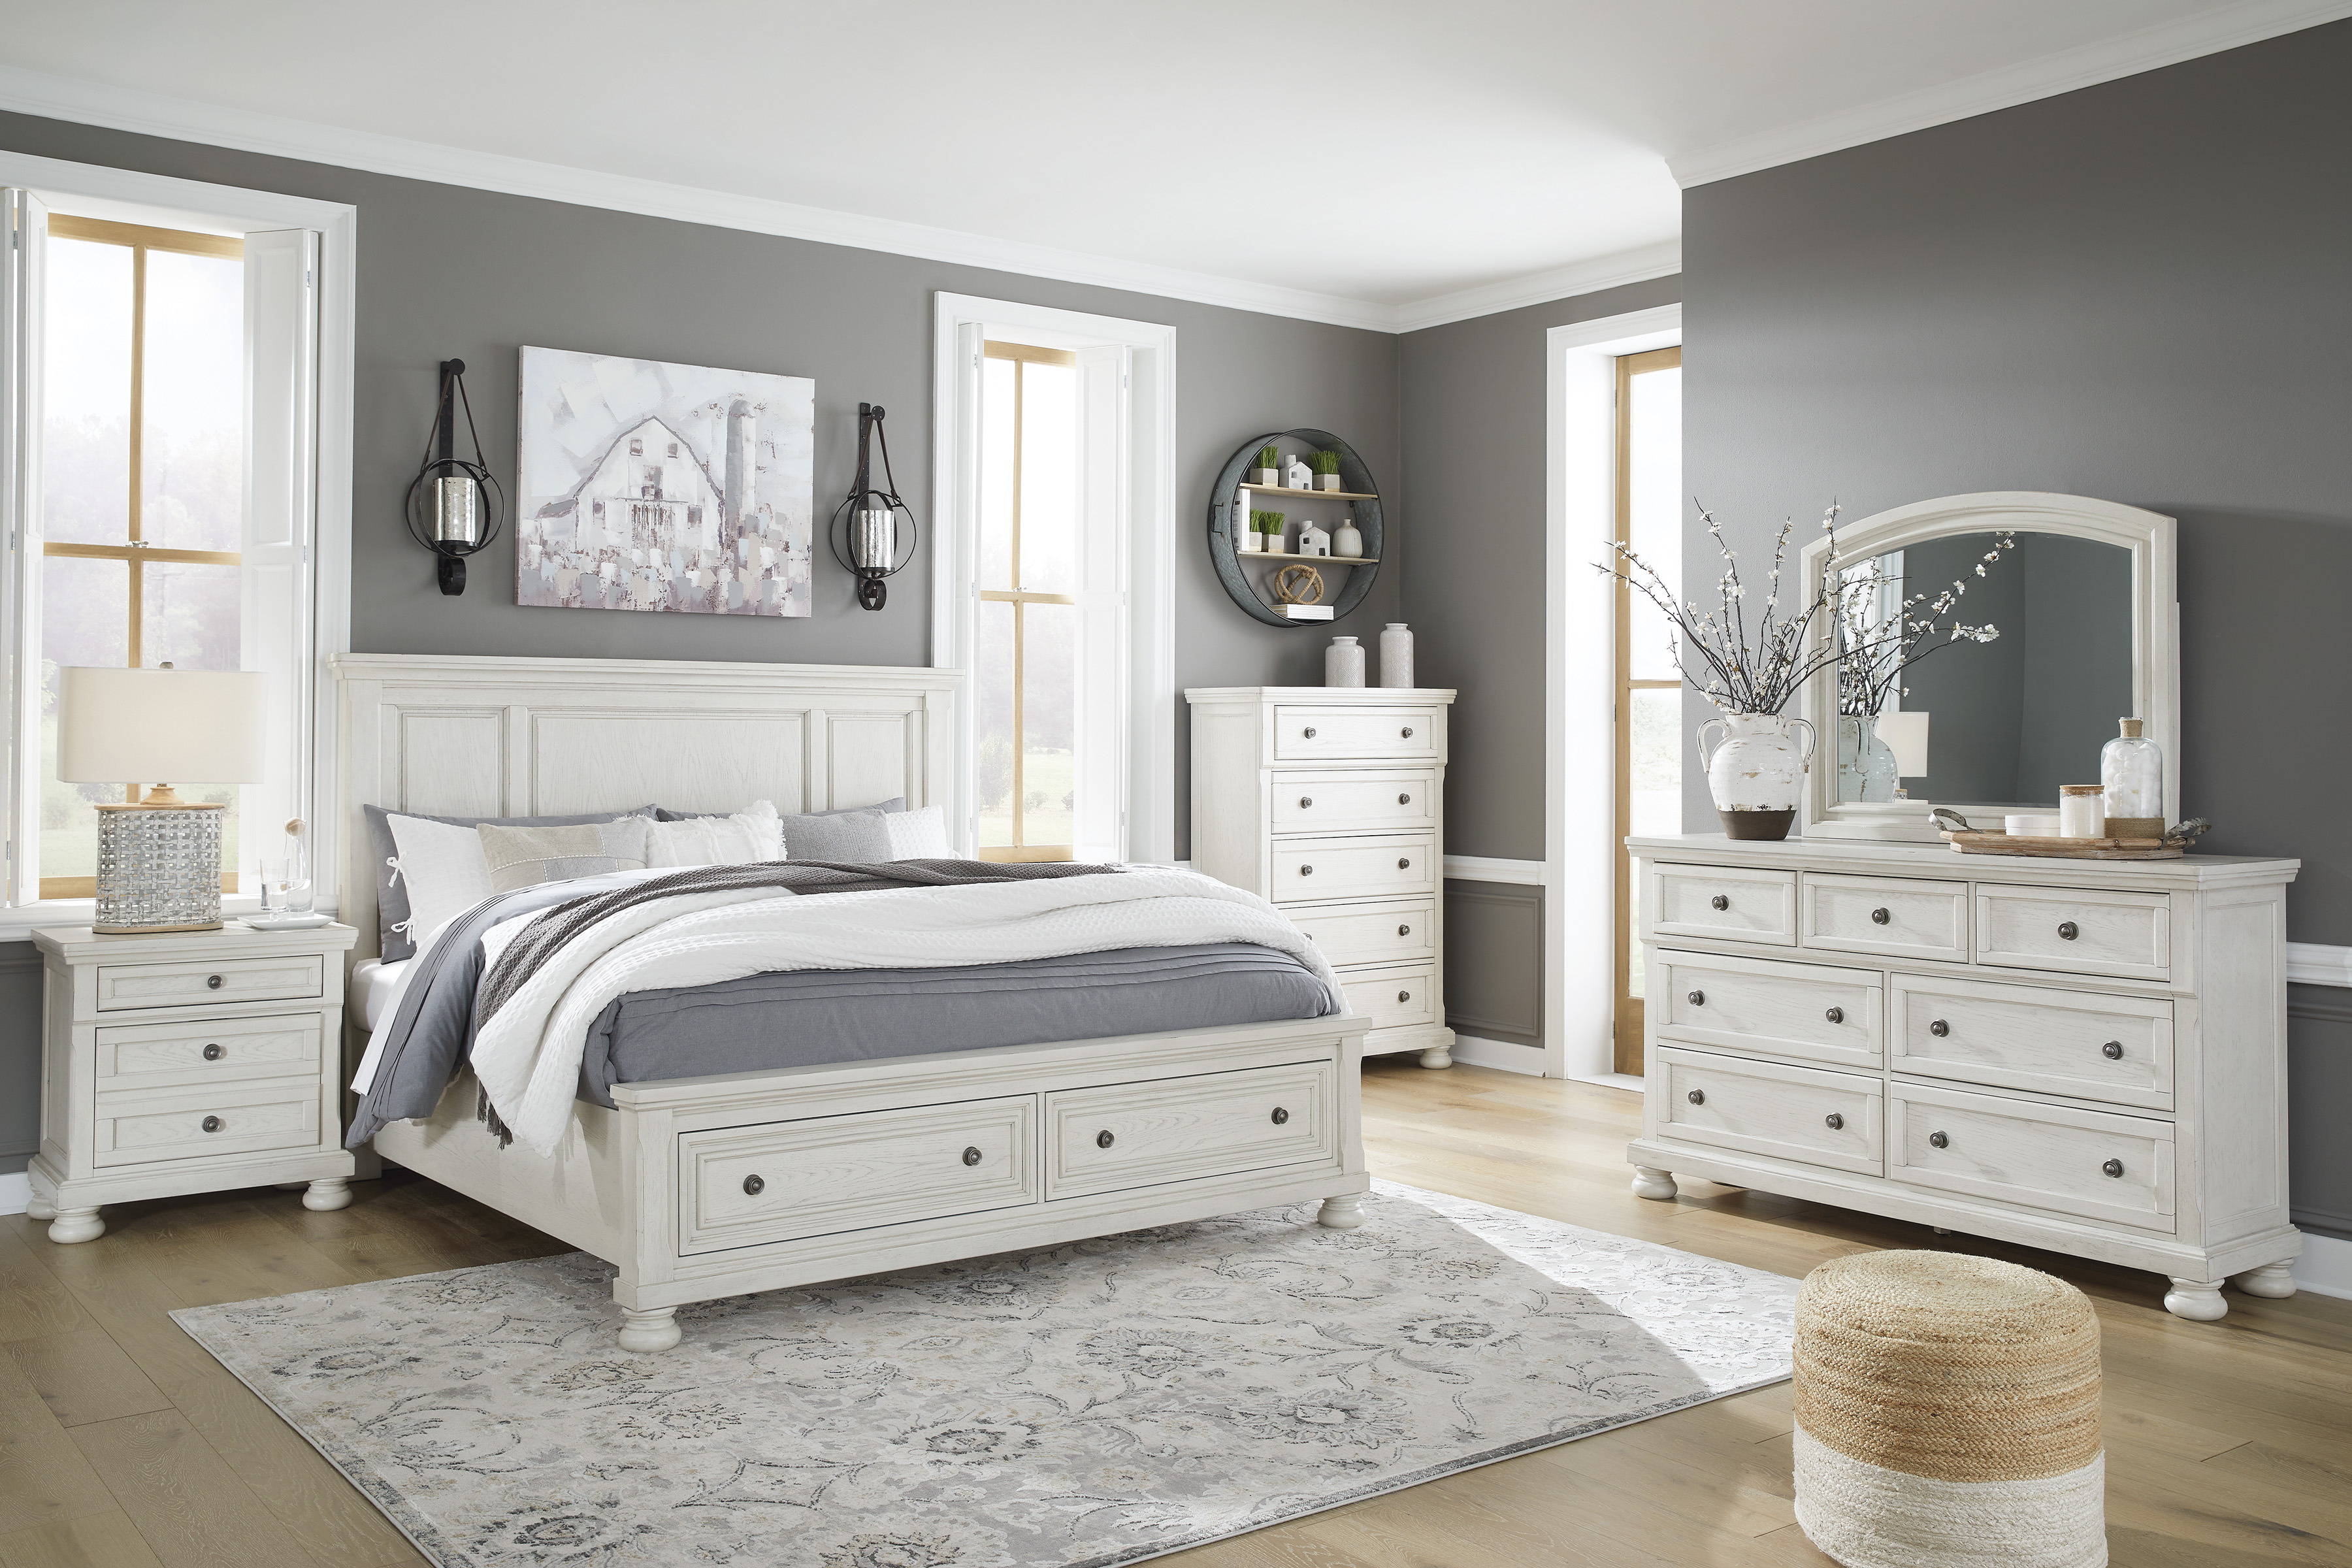 Robbinsdale Bedroom Groups by Signature Design by Ashley at Standard Furniture